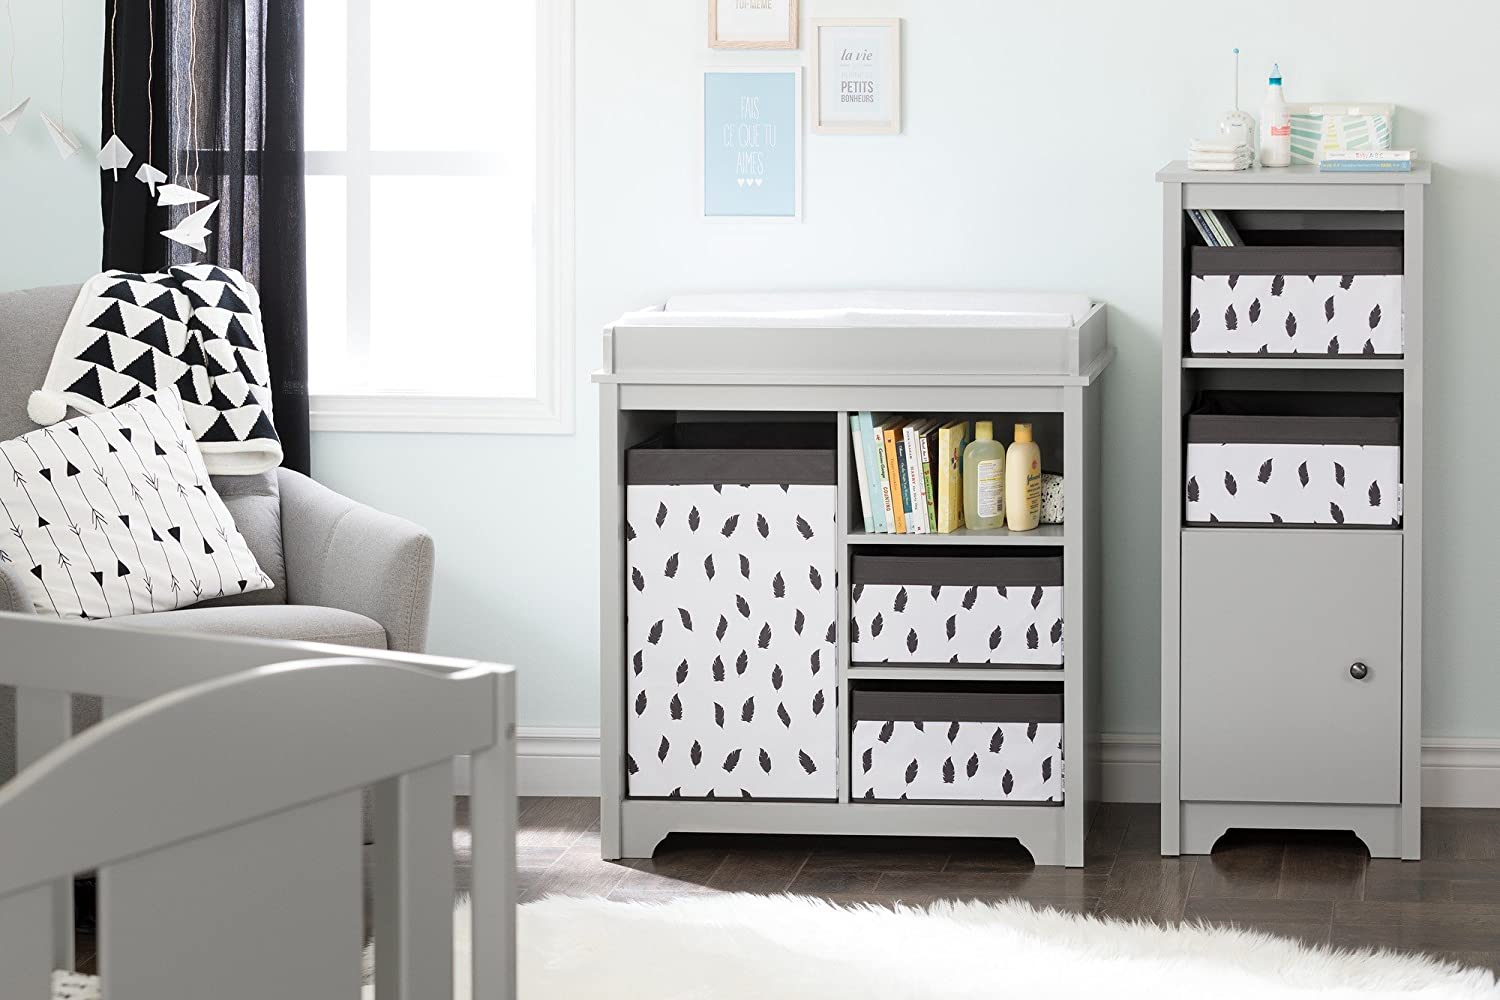 South Shore Furniture 100213 Storit Laundry Hamper Feathers Print White//Grey